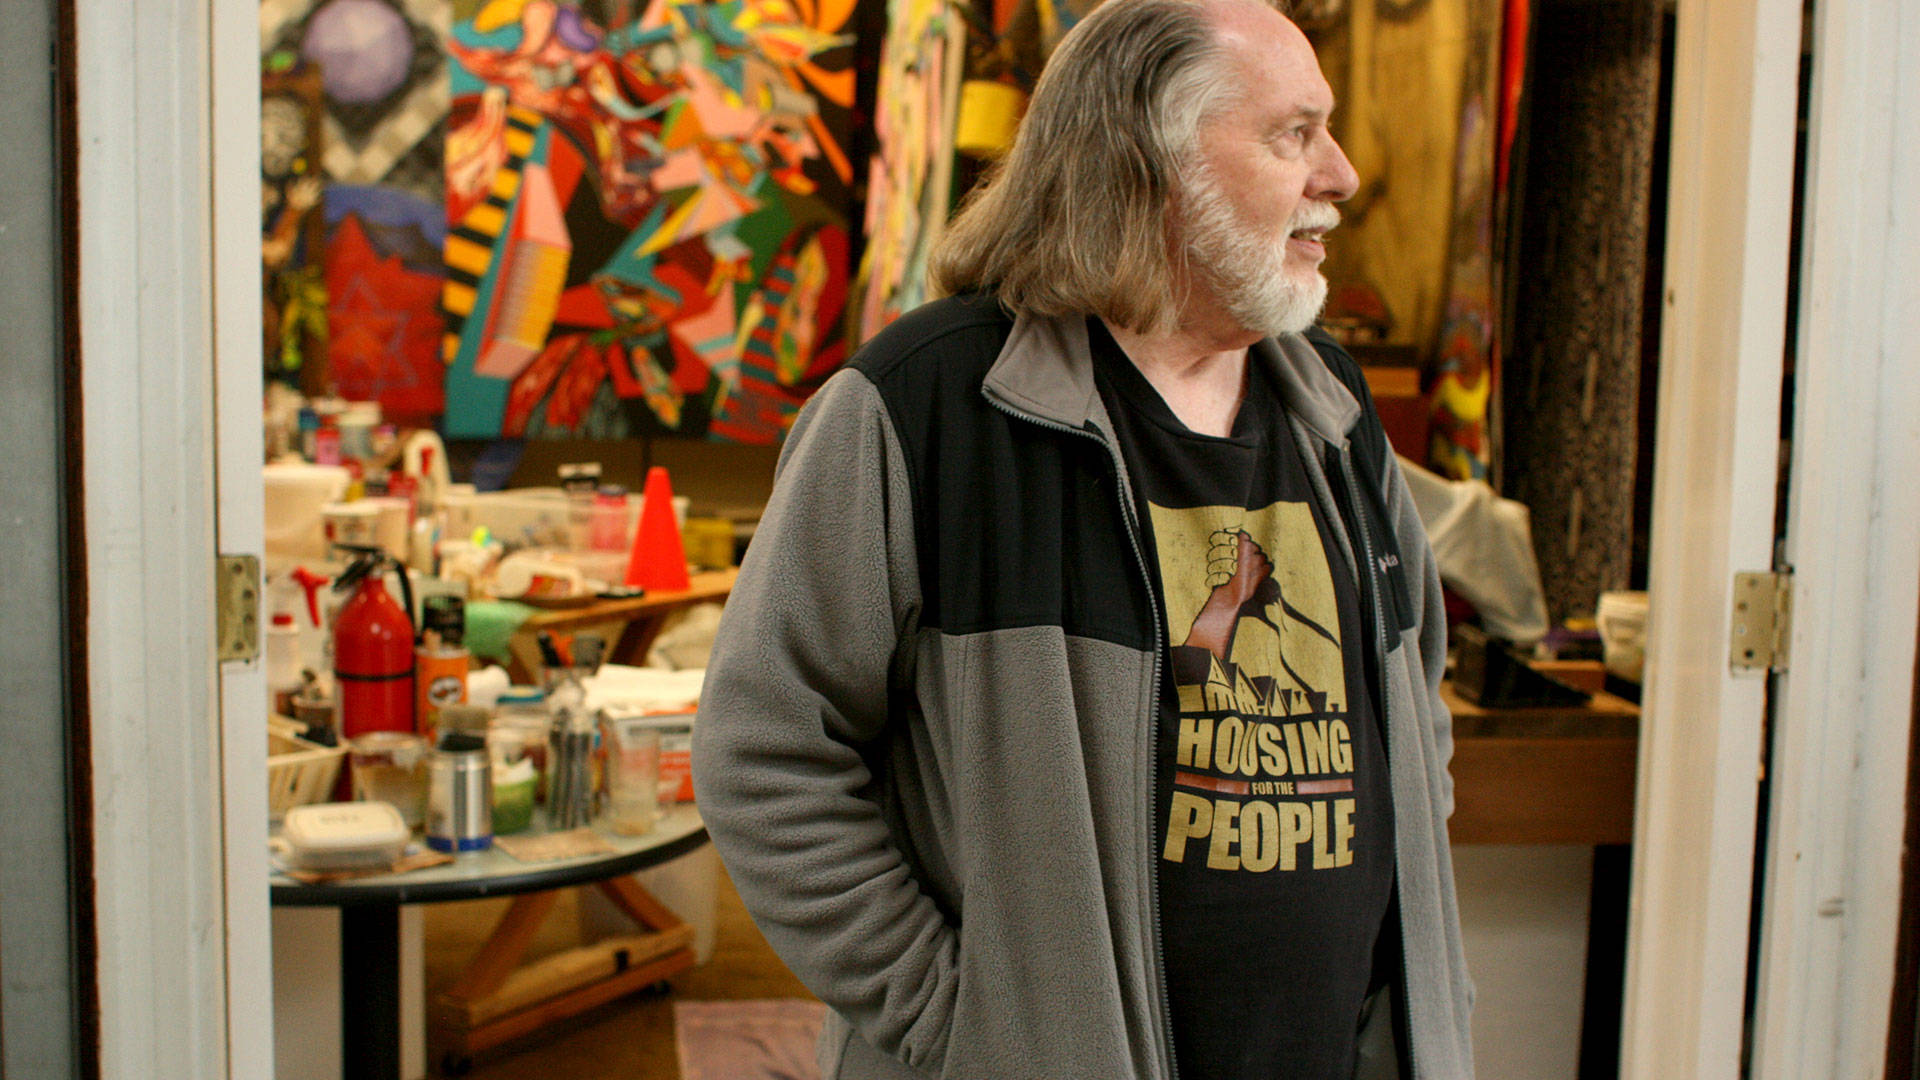 Robert Gill in front of his art studio in East Oakland. The 71-year-old artist is being evicted from his home of nearly 18 years by a process that tenants' rights activists are calling an unjust loophole in city code. Gabe Meline/KQED